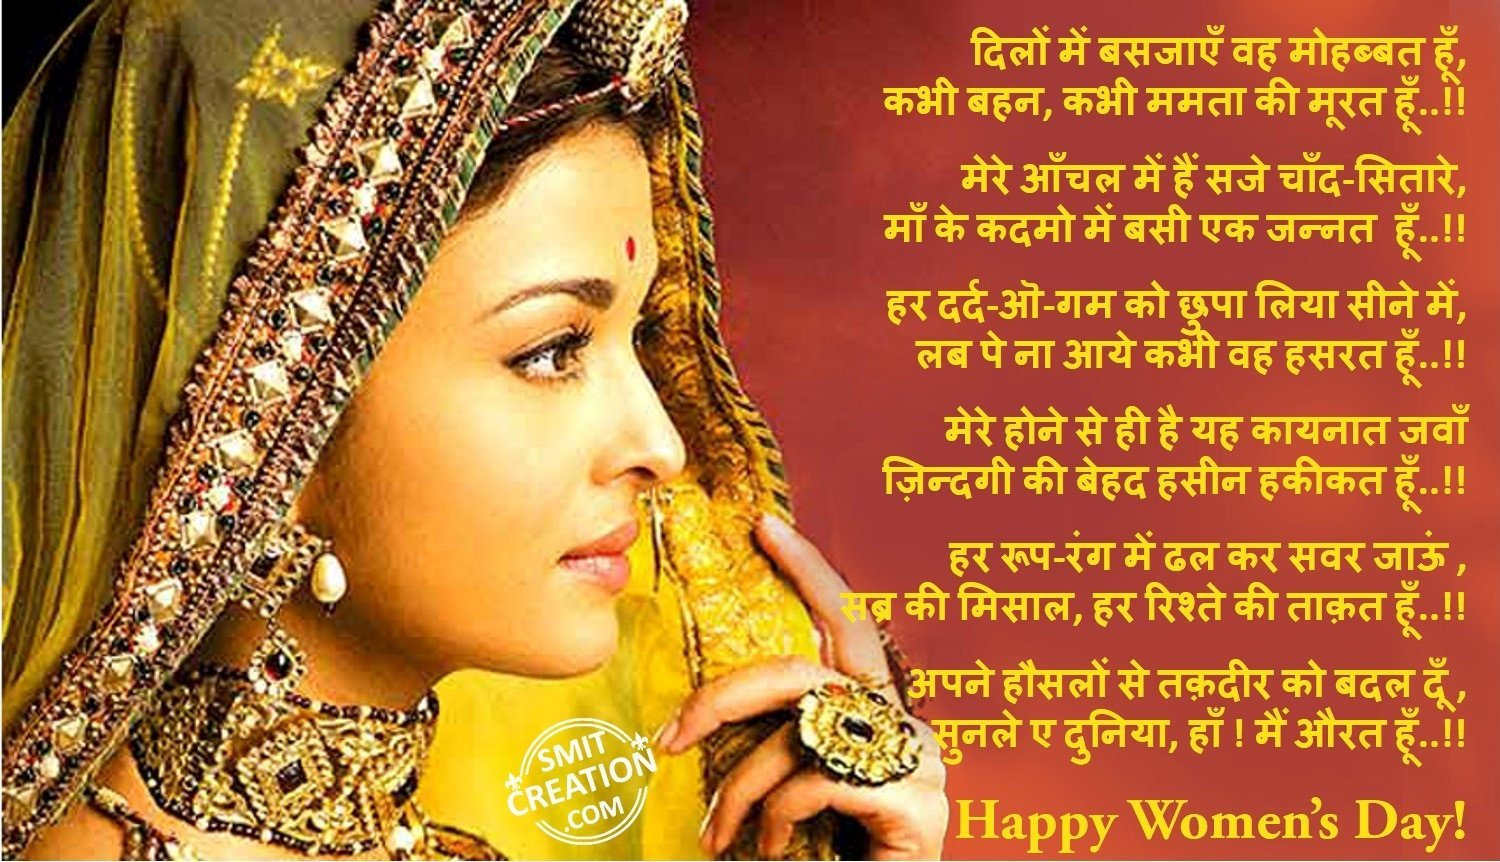 International Womens Day In Hindi Pictures And Graphics